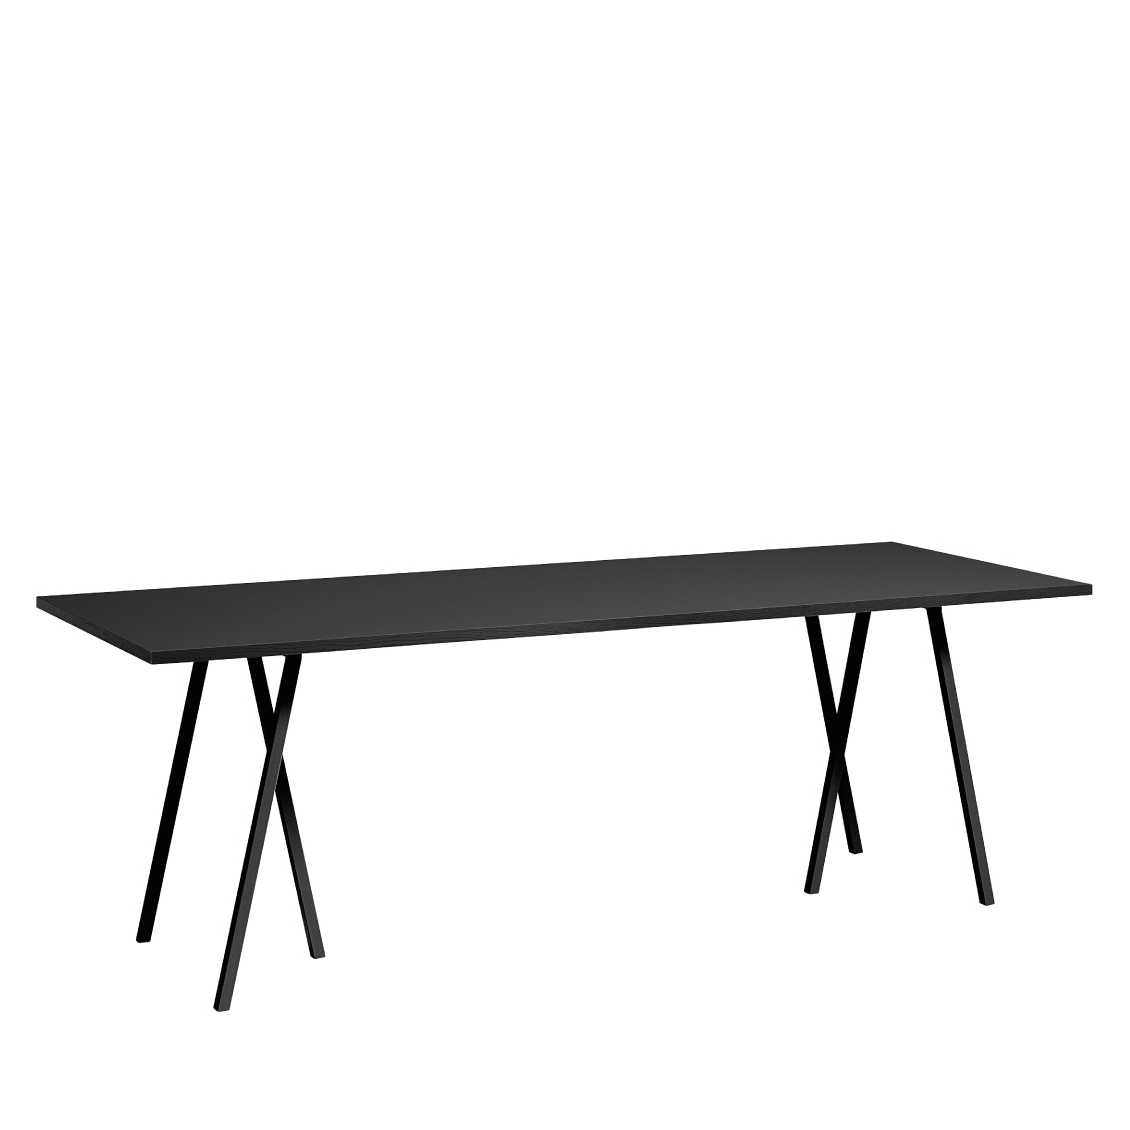 hay loop stand table 180cm x 87cm black white grey eettafel. Black Bedroom Furniture Sets. Home Design Ideas